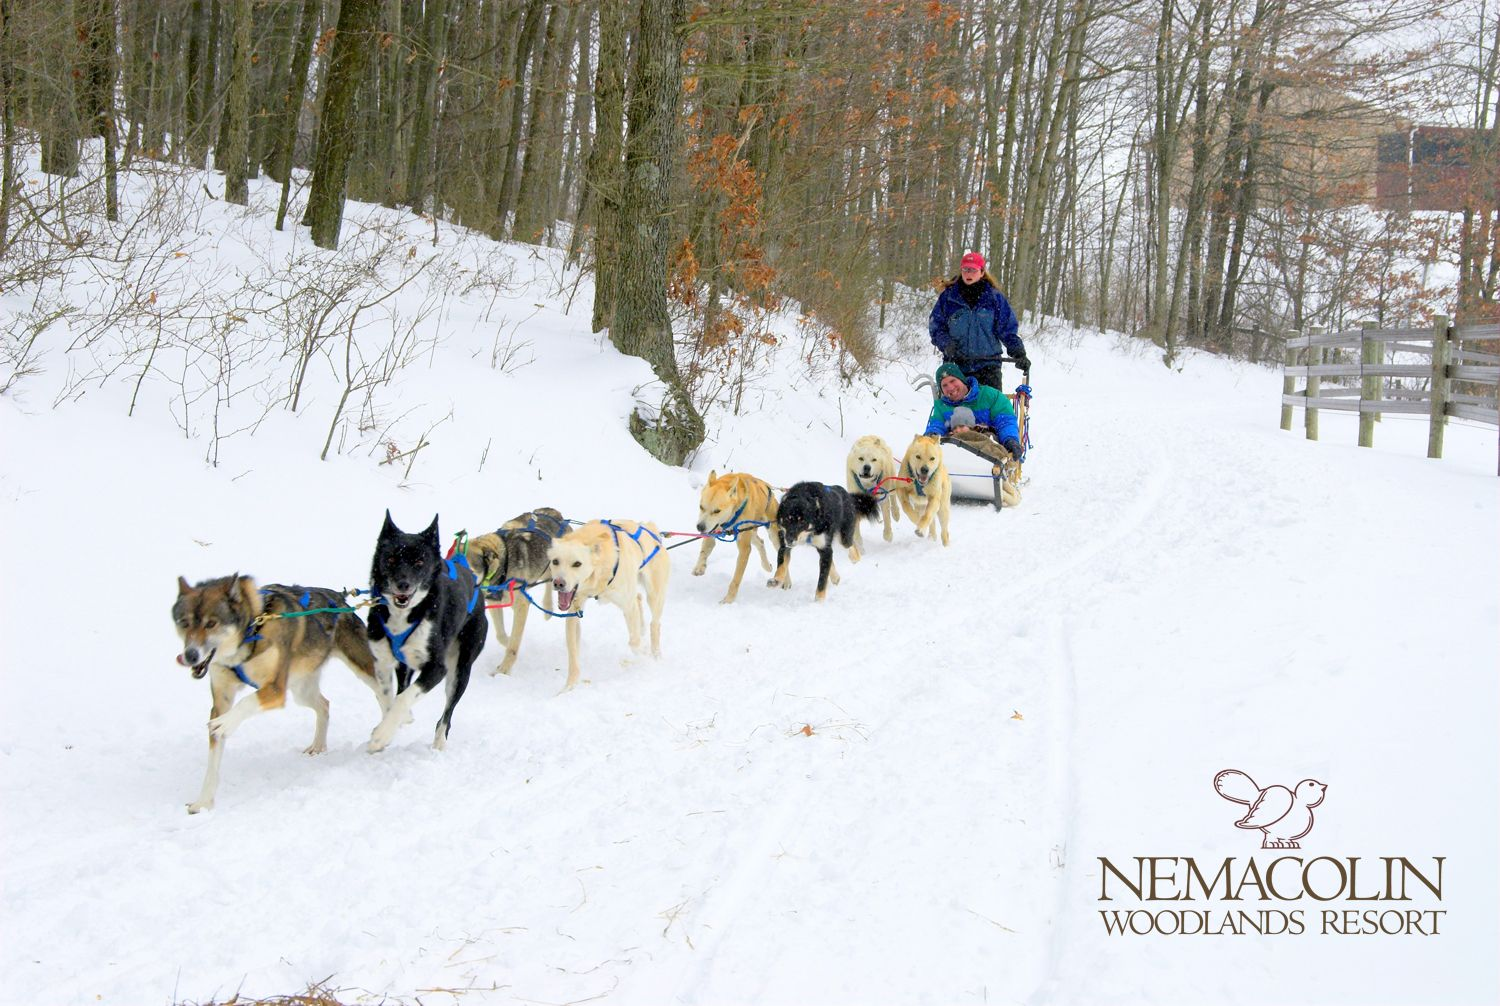 Meet Nemacolin S Exclusive Team Of Sled Dogs Dog Sledding Winter Activities Winter Outdoors